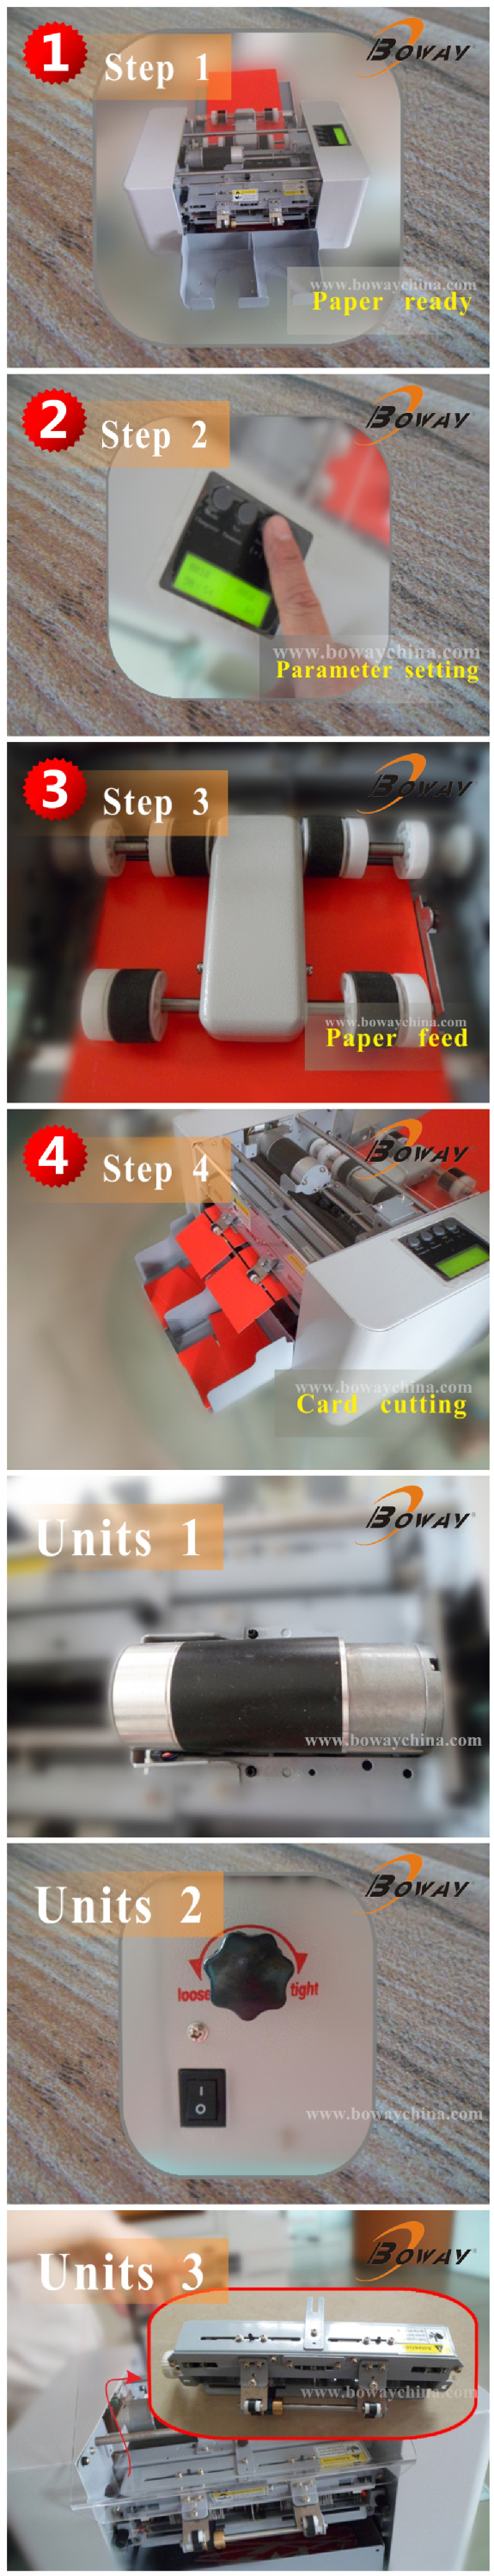 Boway service 200 pieces card/minute automatic a3 size business card cutter